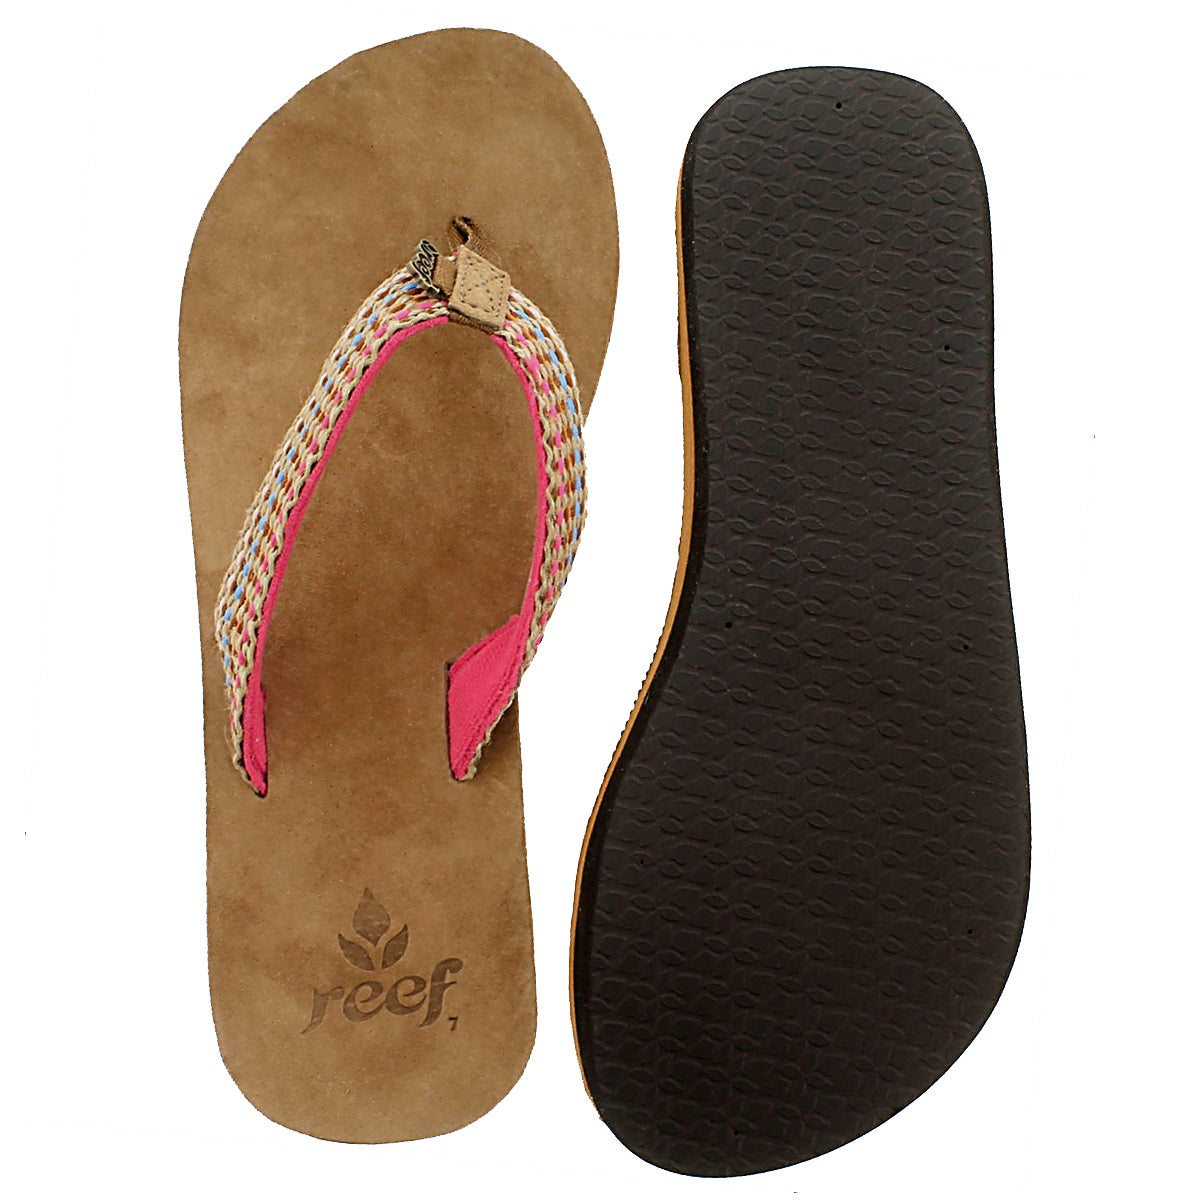 Lds Reef Gypsy Love pink thong sandal